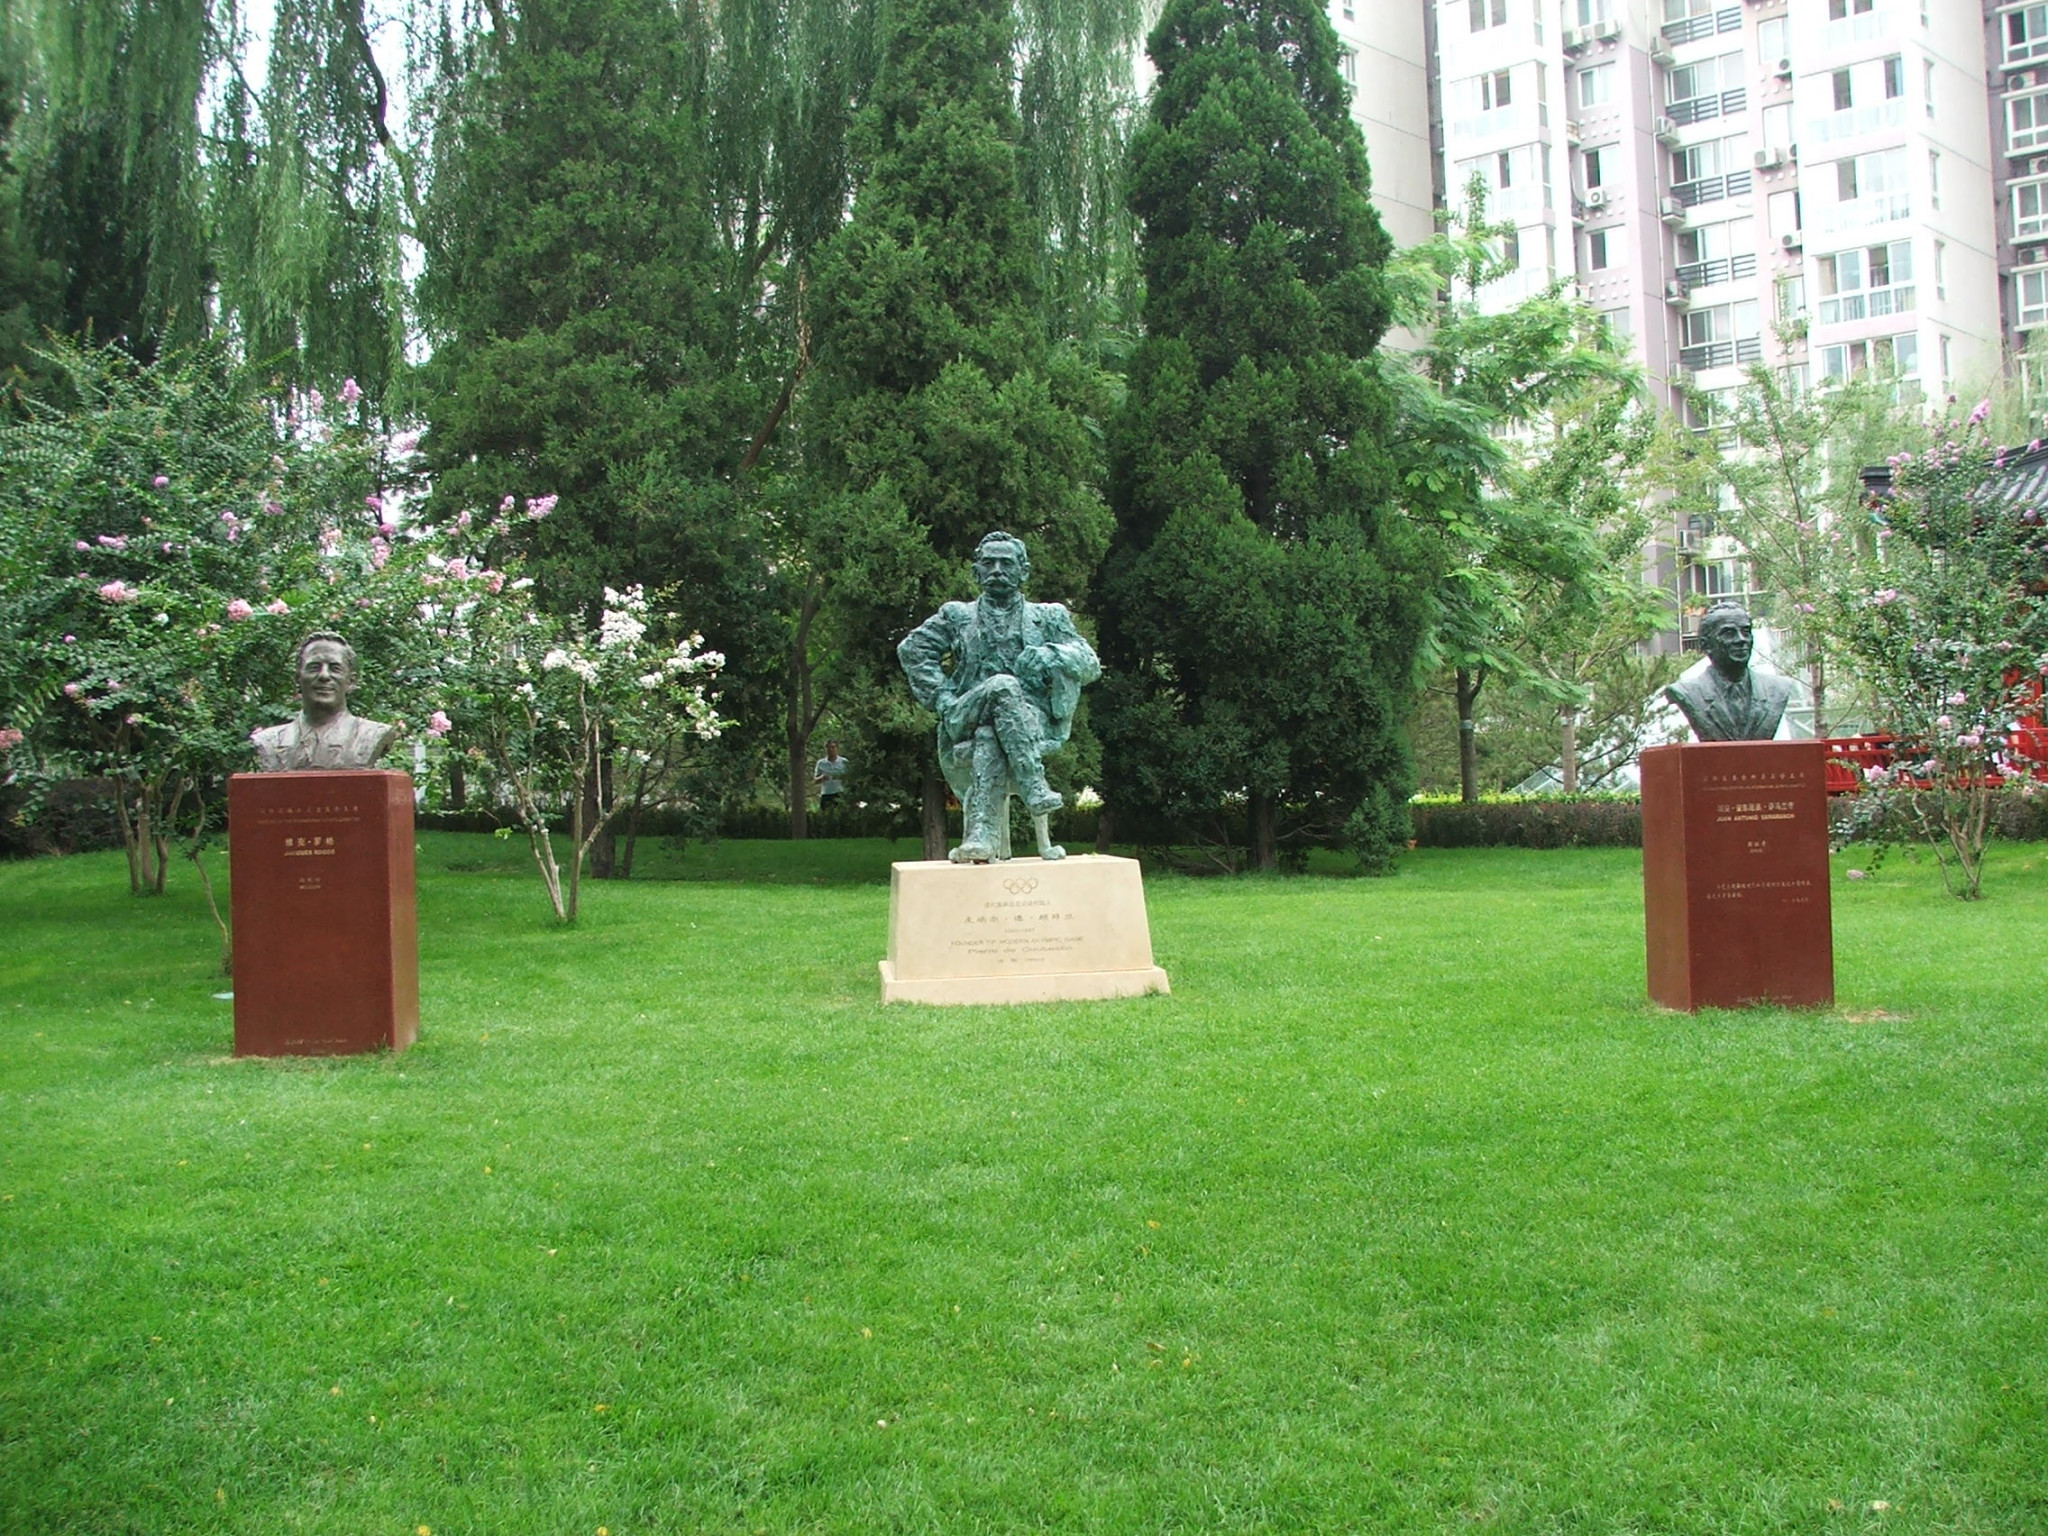 Statues of three former IOC Presidents in Beijing - from left Jacques Rogge, Pierre de Coubertin and Juan Antonio Samaranch ©Philip Barker